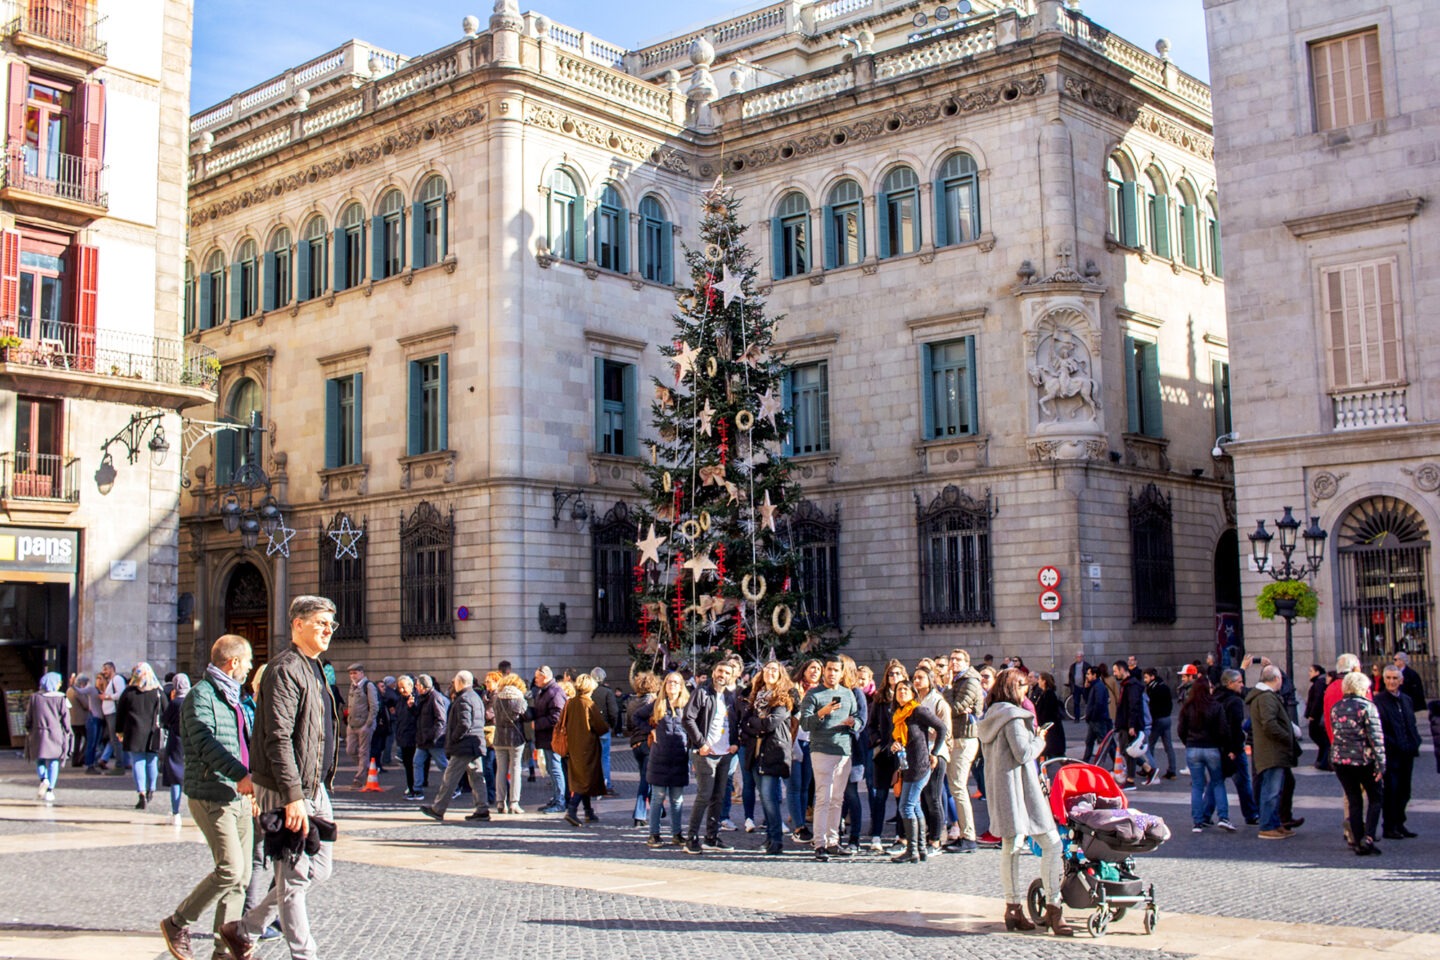 Christmas tree with crowds in front of it in square in Barcelona